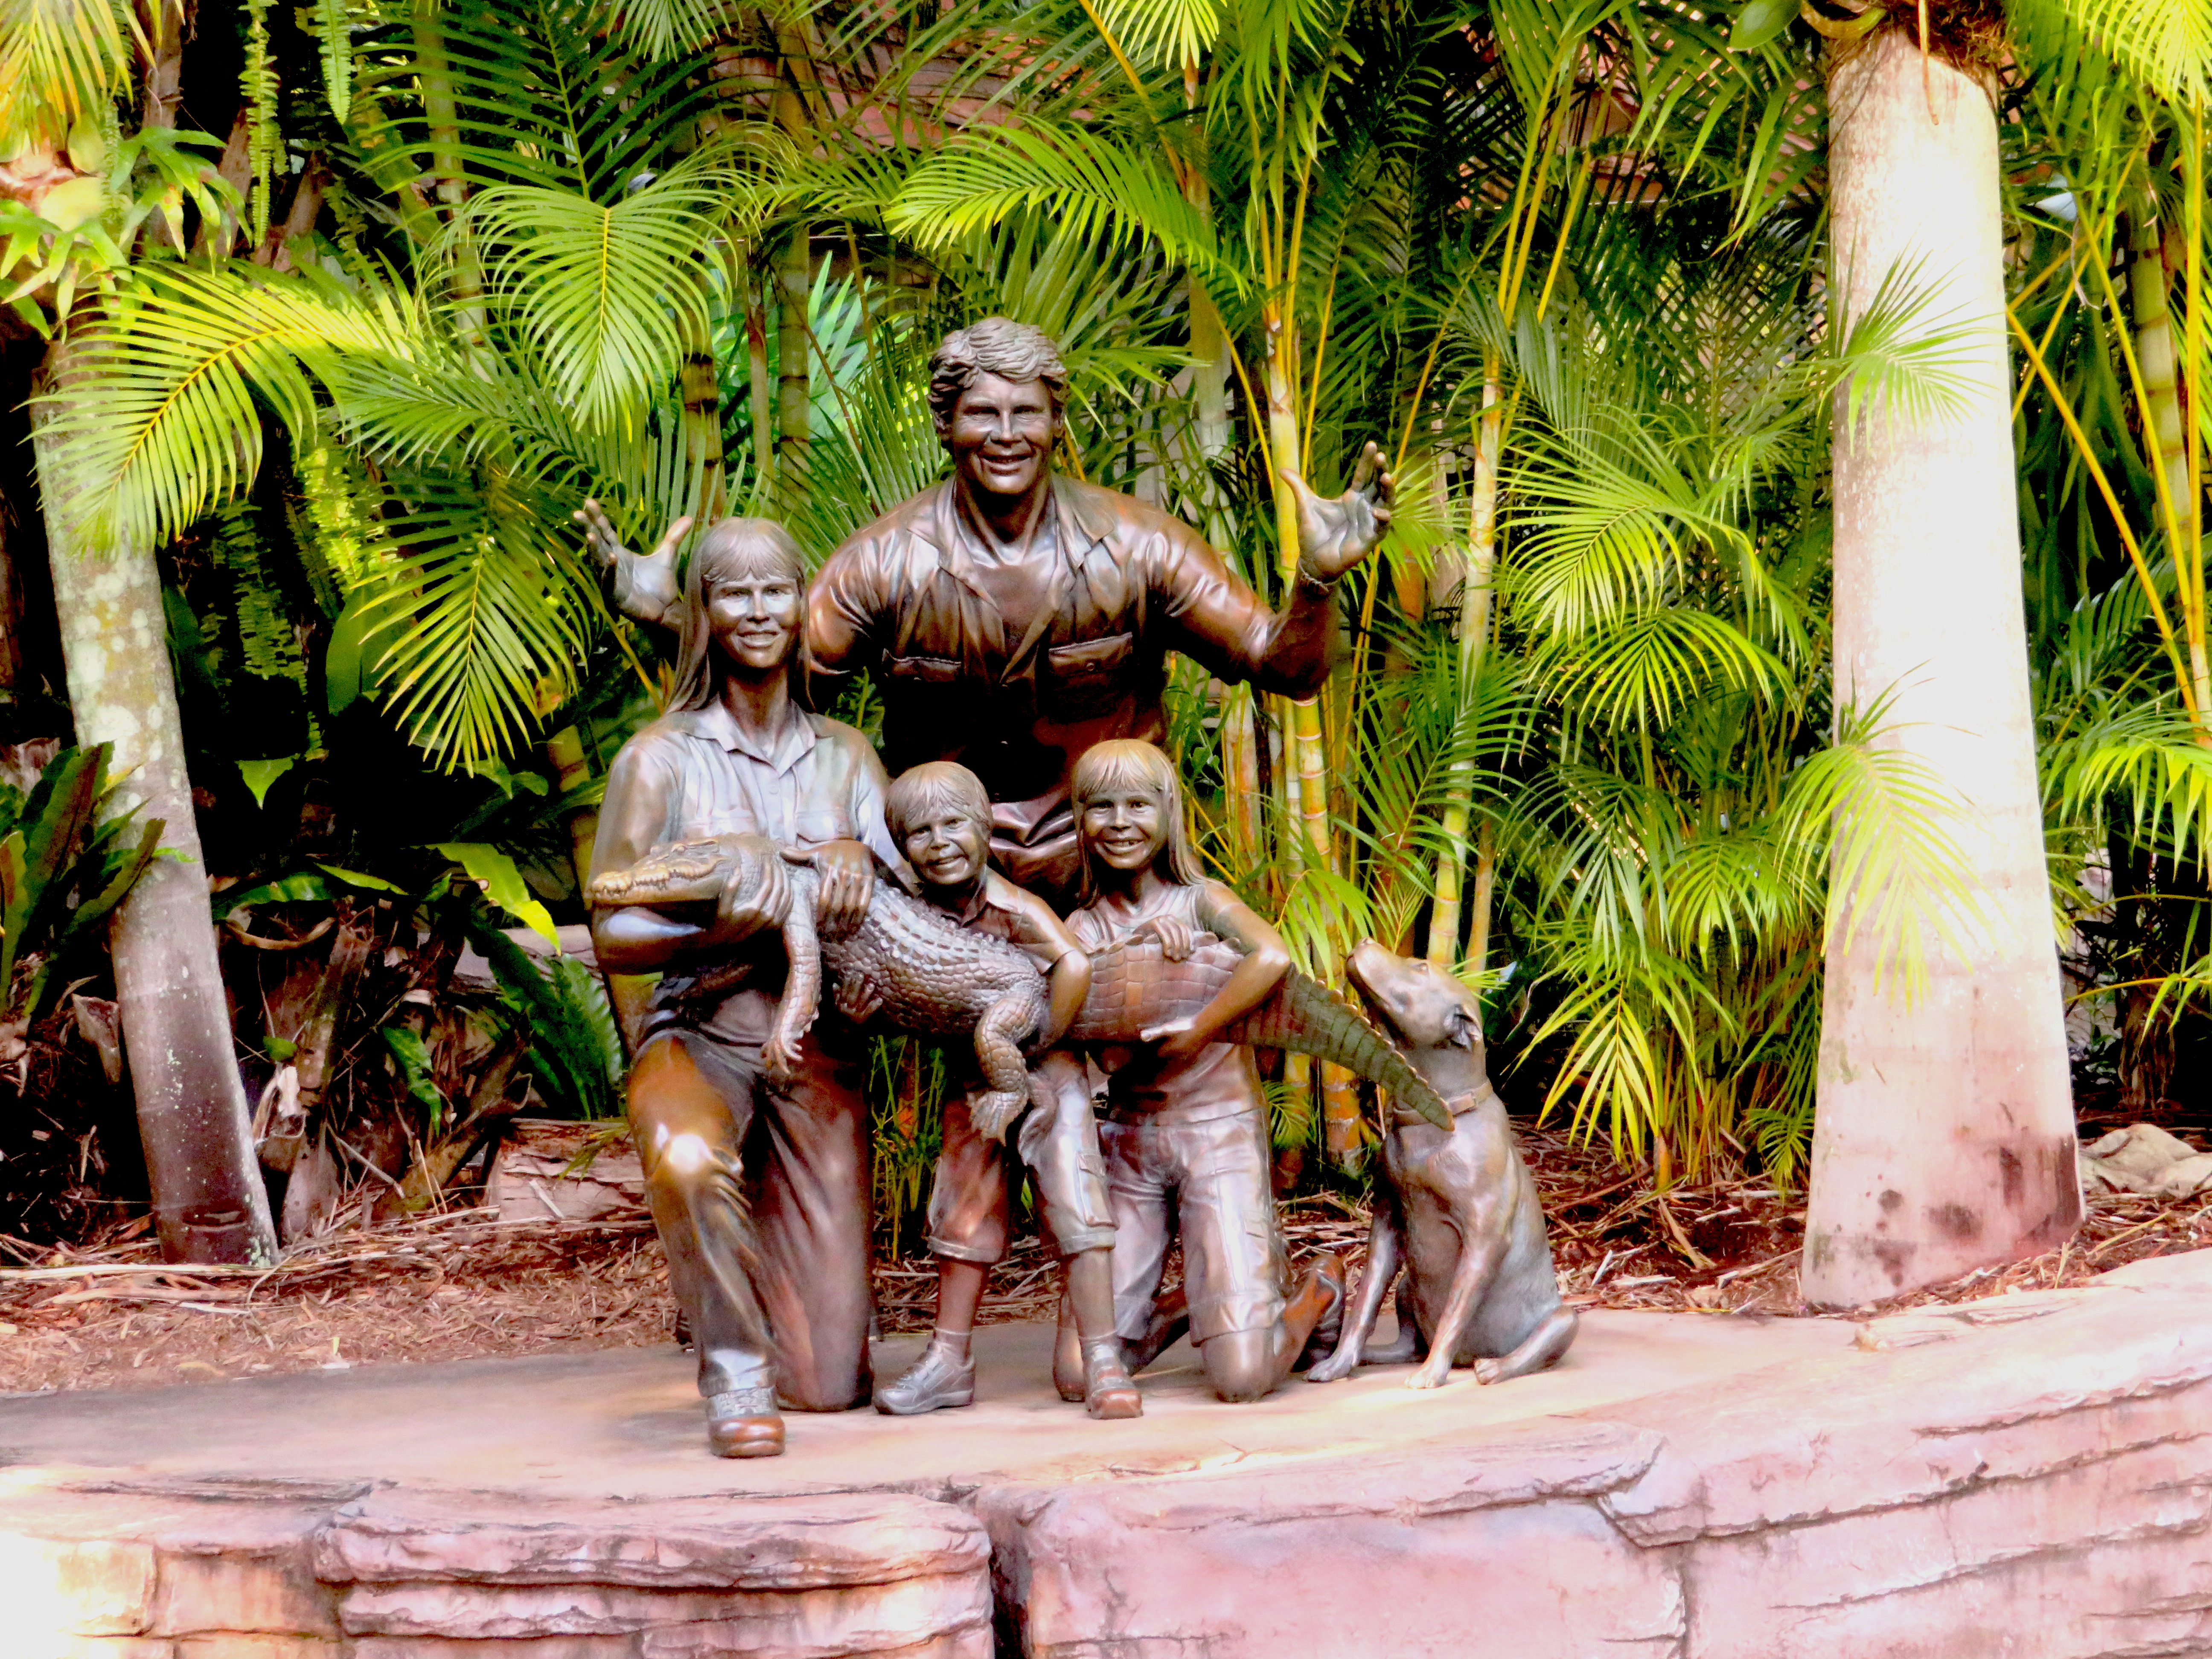 Statue of Steve Erwin and his family at the Australia Zoo.